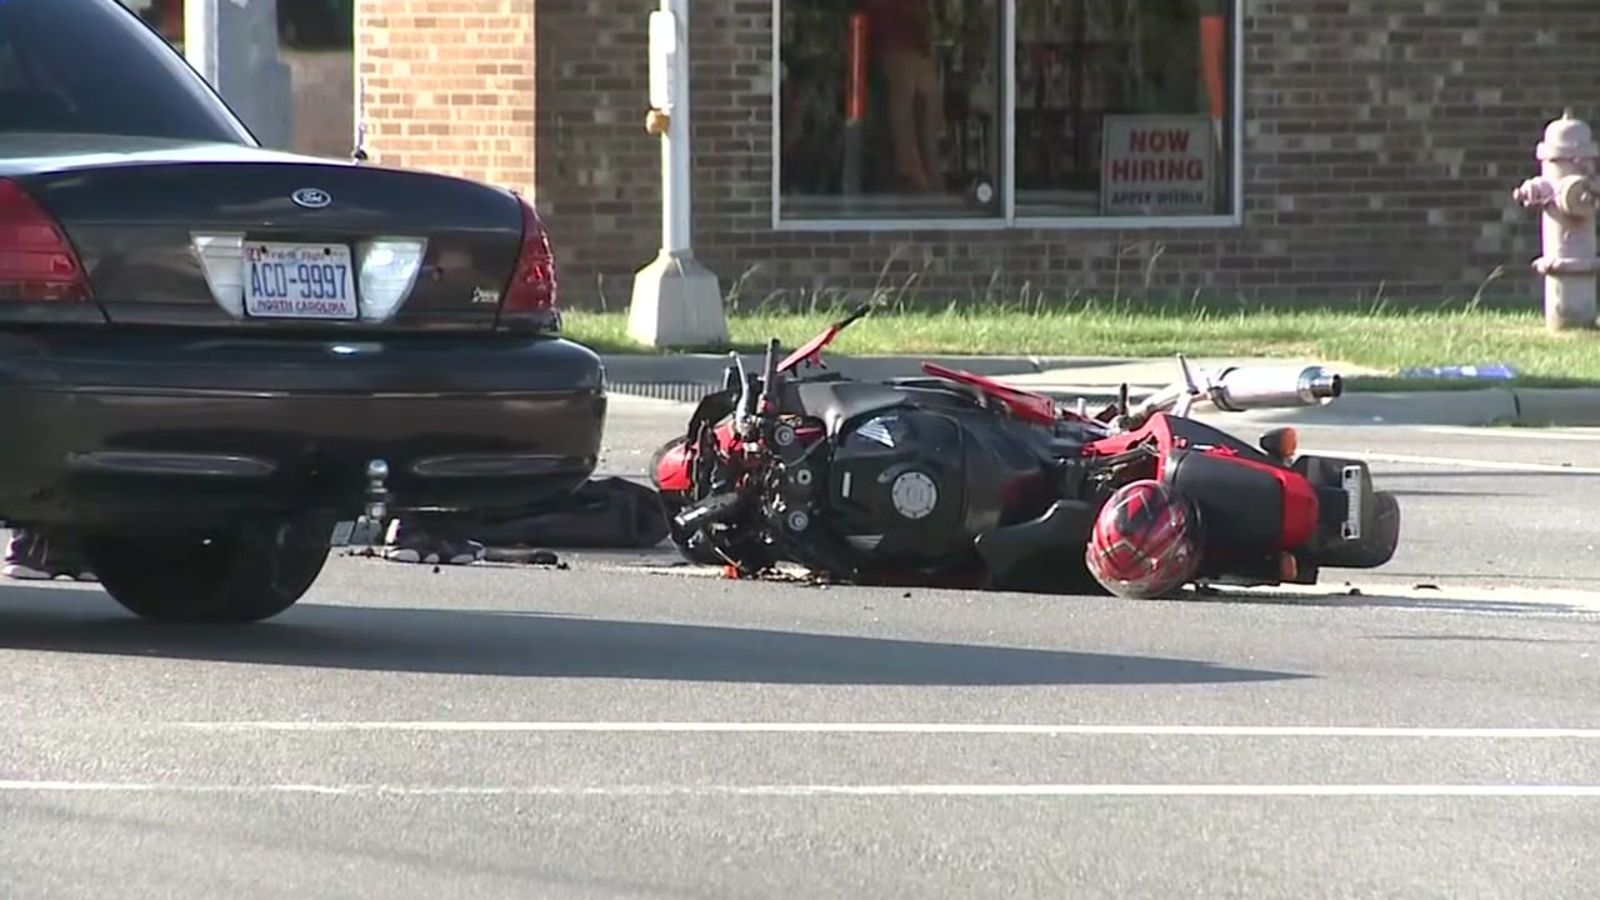 30 Year Old Man Killed In Motorcycle Involved Crash In Durham Durham Police 30 Year Old Man Man Kill